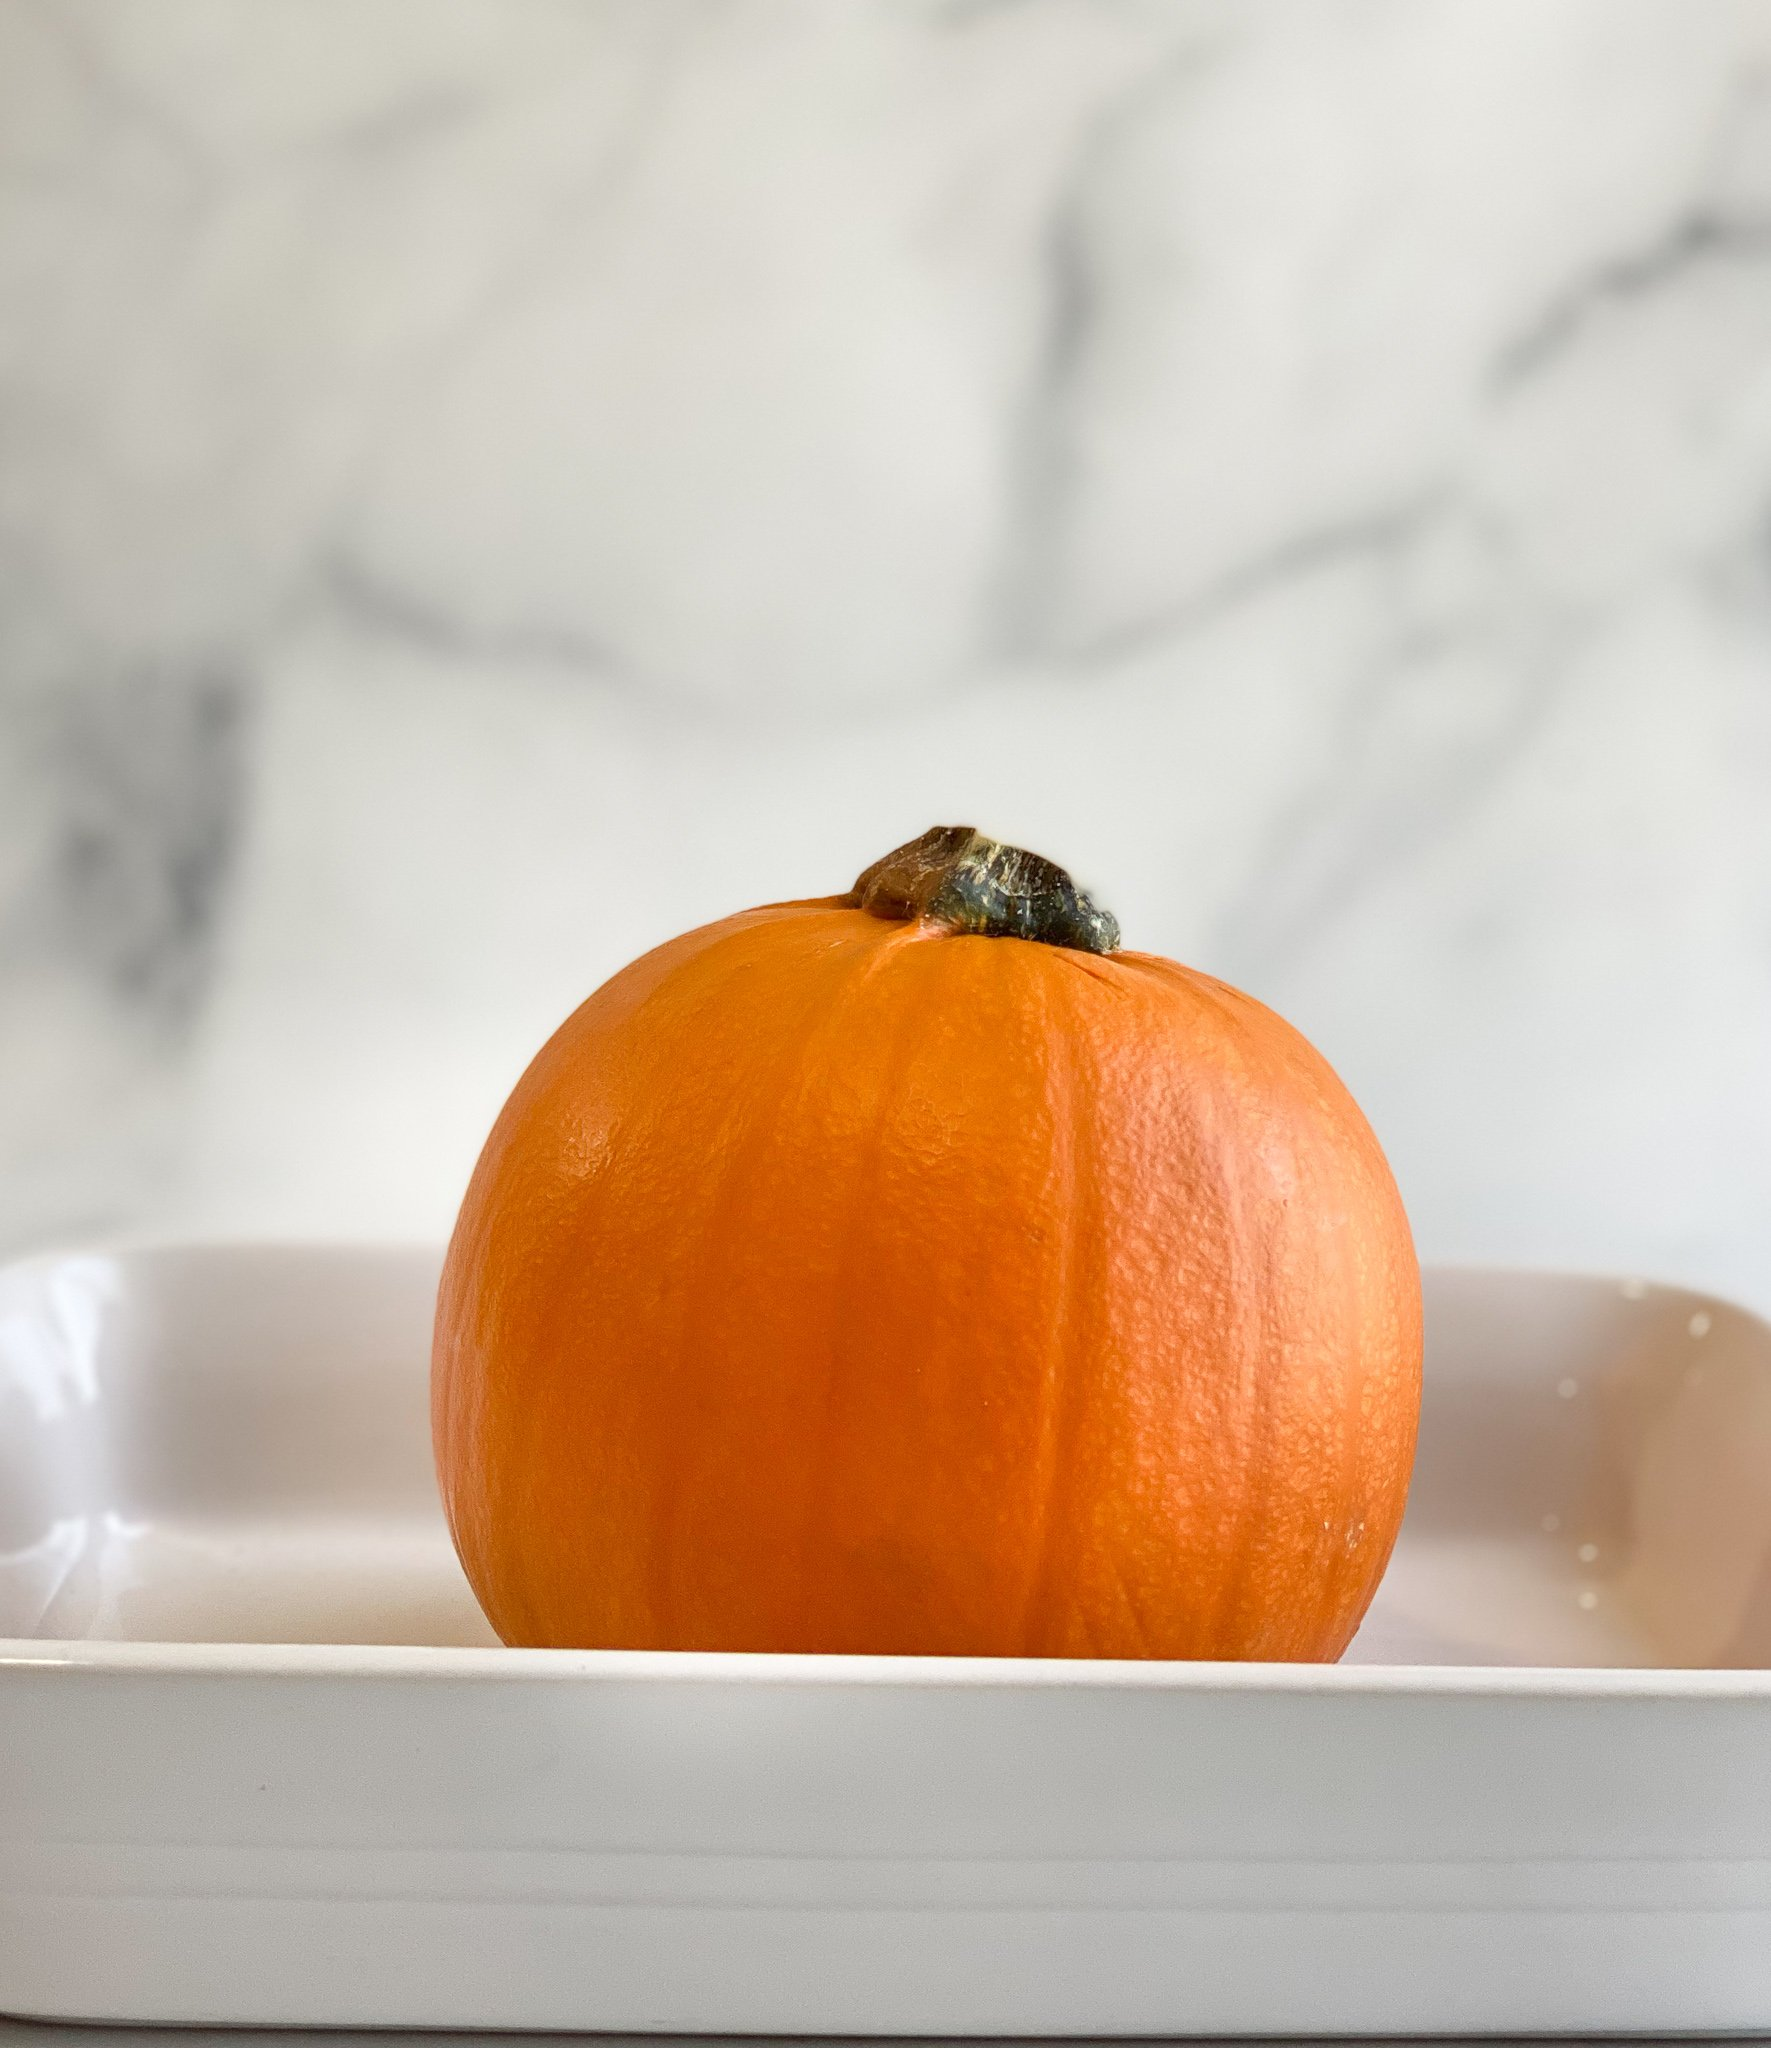 Step 2 of making pumpkin puree is to place the whole pumpkin with the cuts in the top into a shallow baking dish.